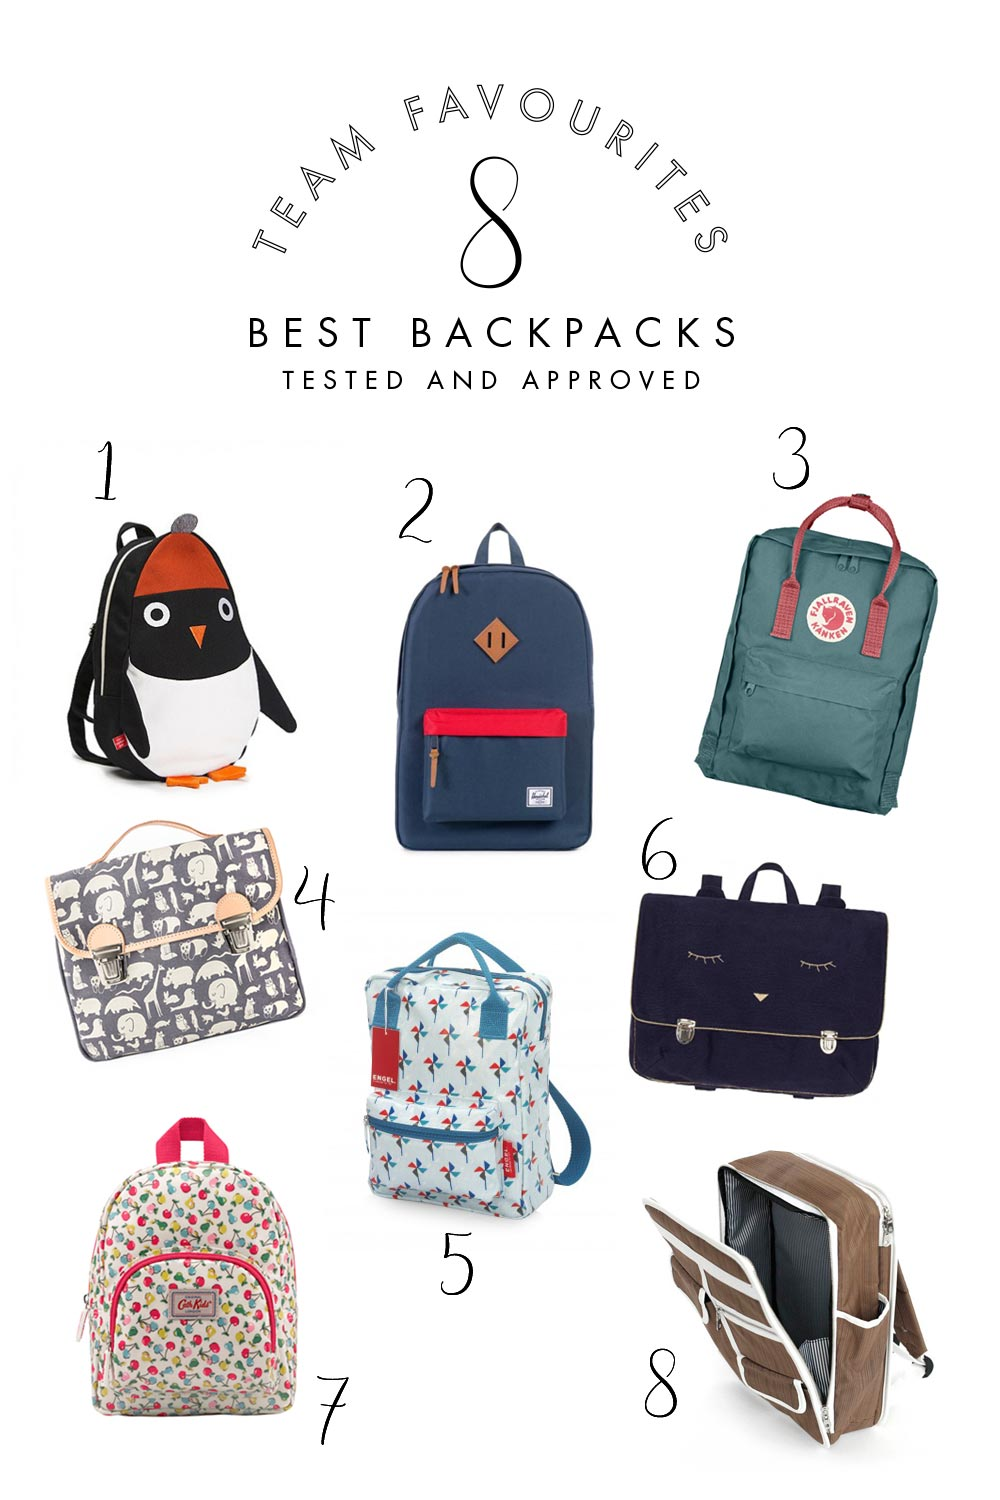 8 best backpacks